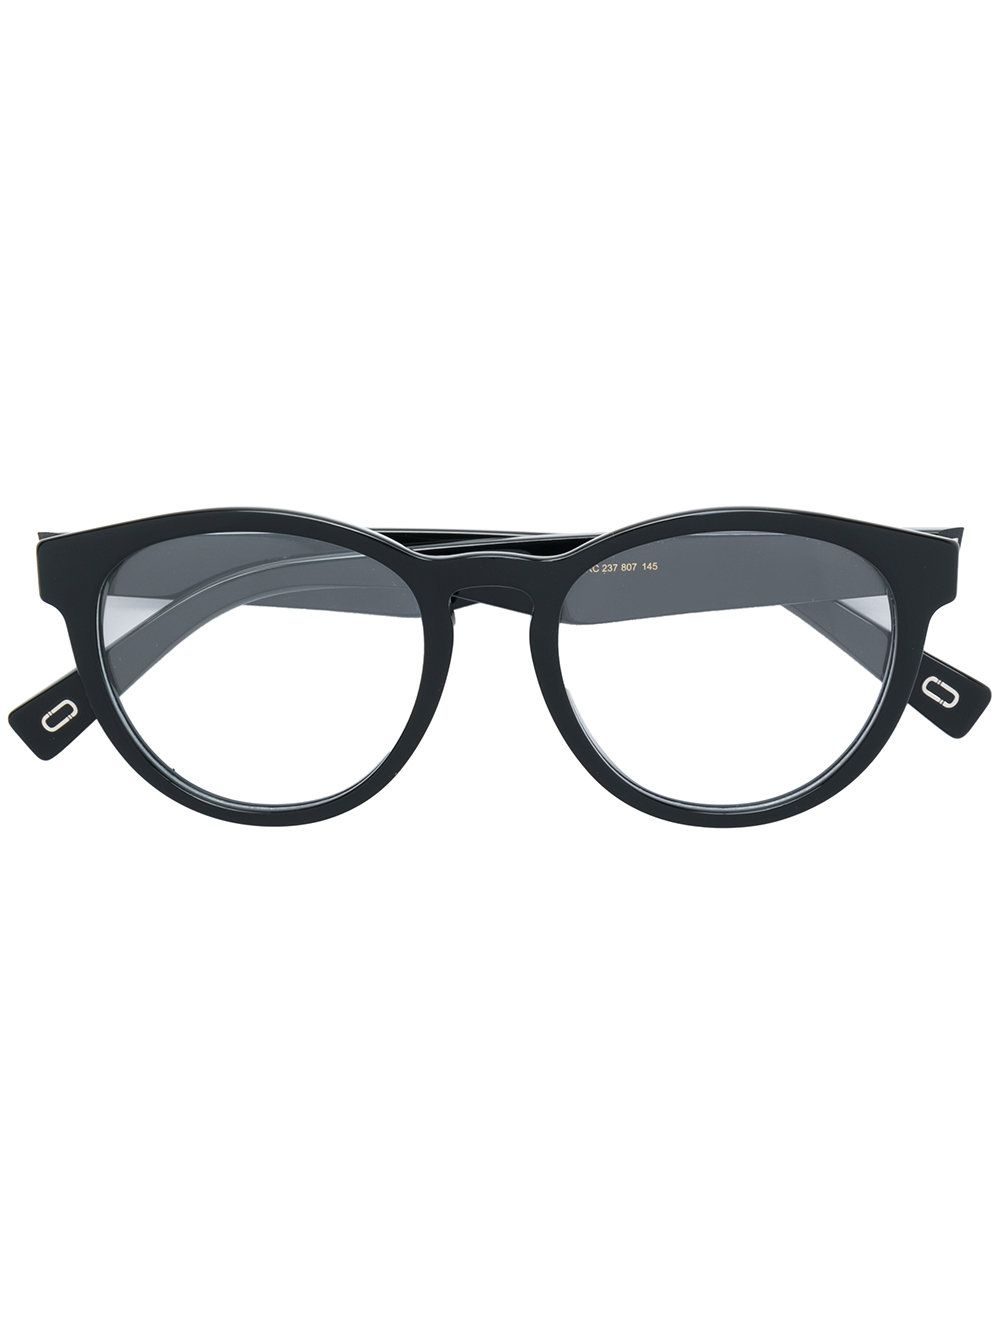 1719875af9f5 MARC JACOBS BLACK. #marcjacobs #   Marc Jacobs in 2019   Marc jacobs ...